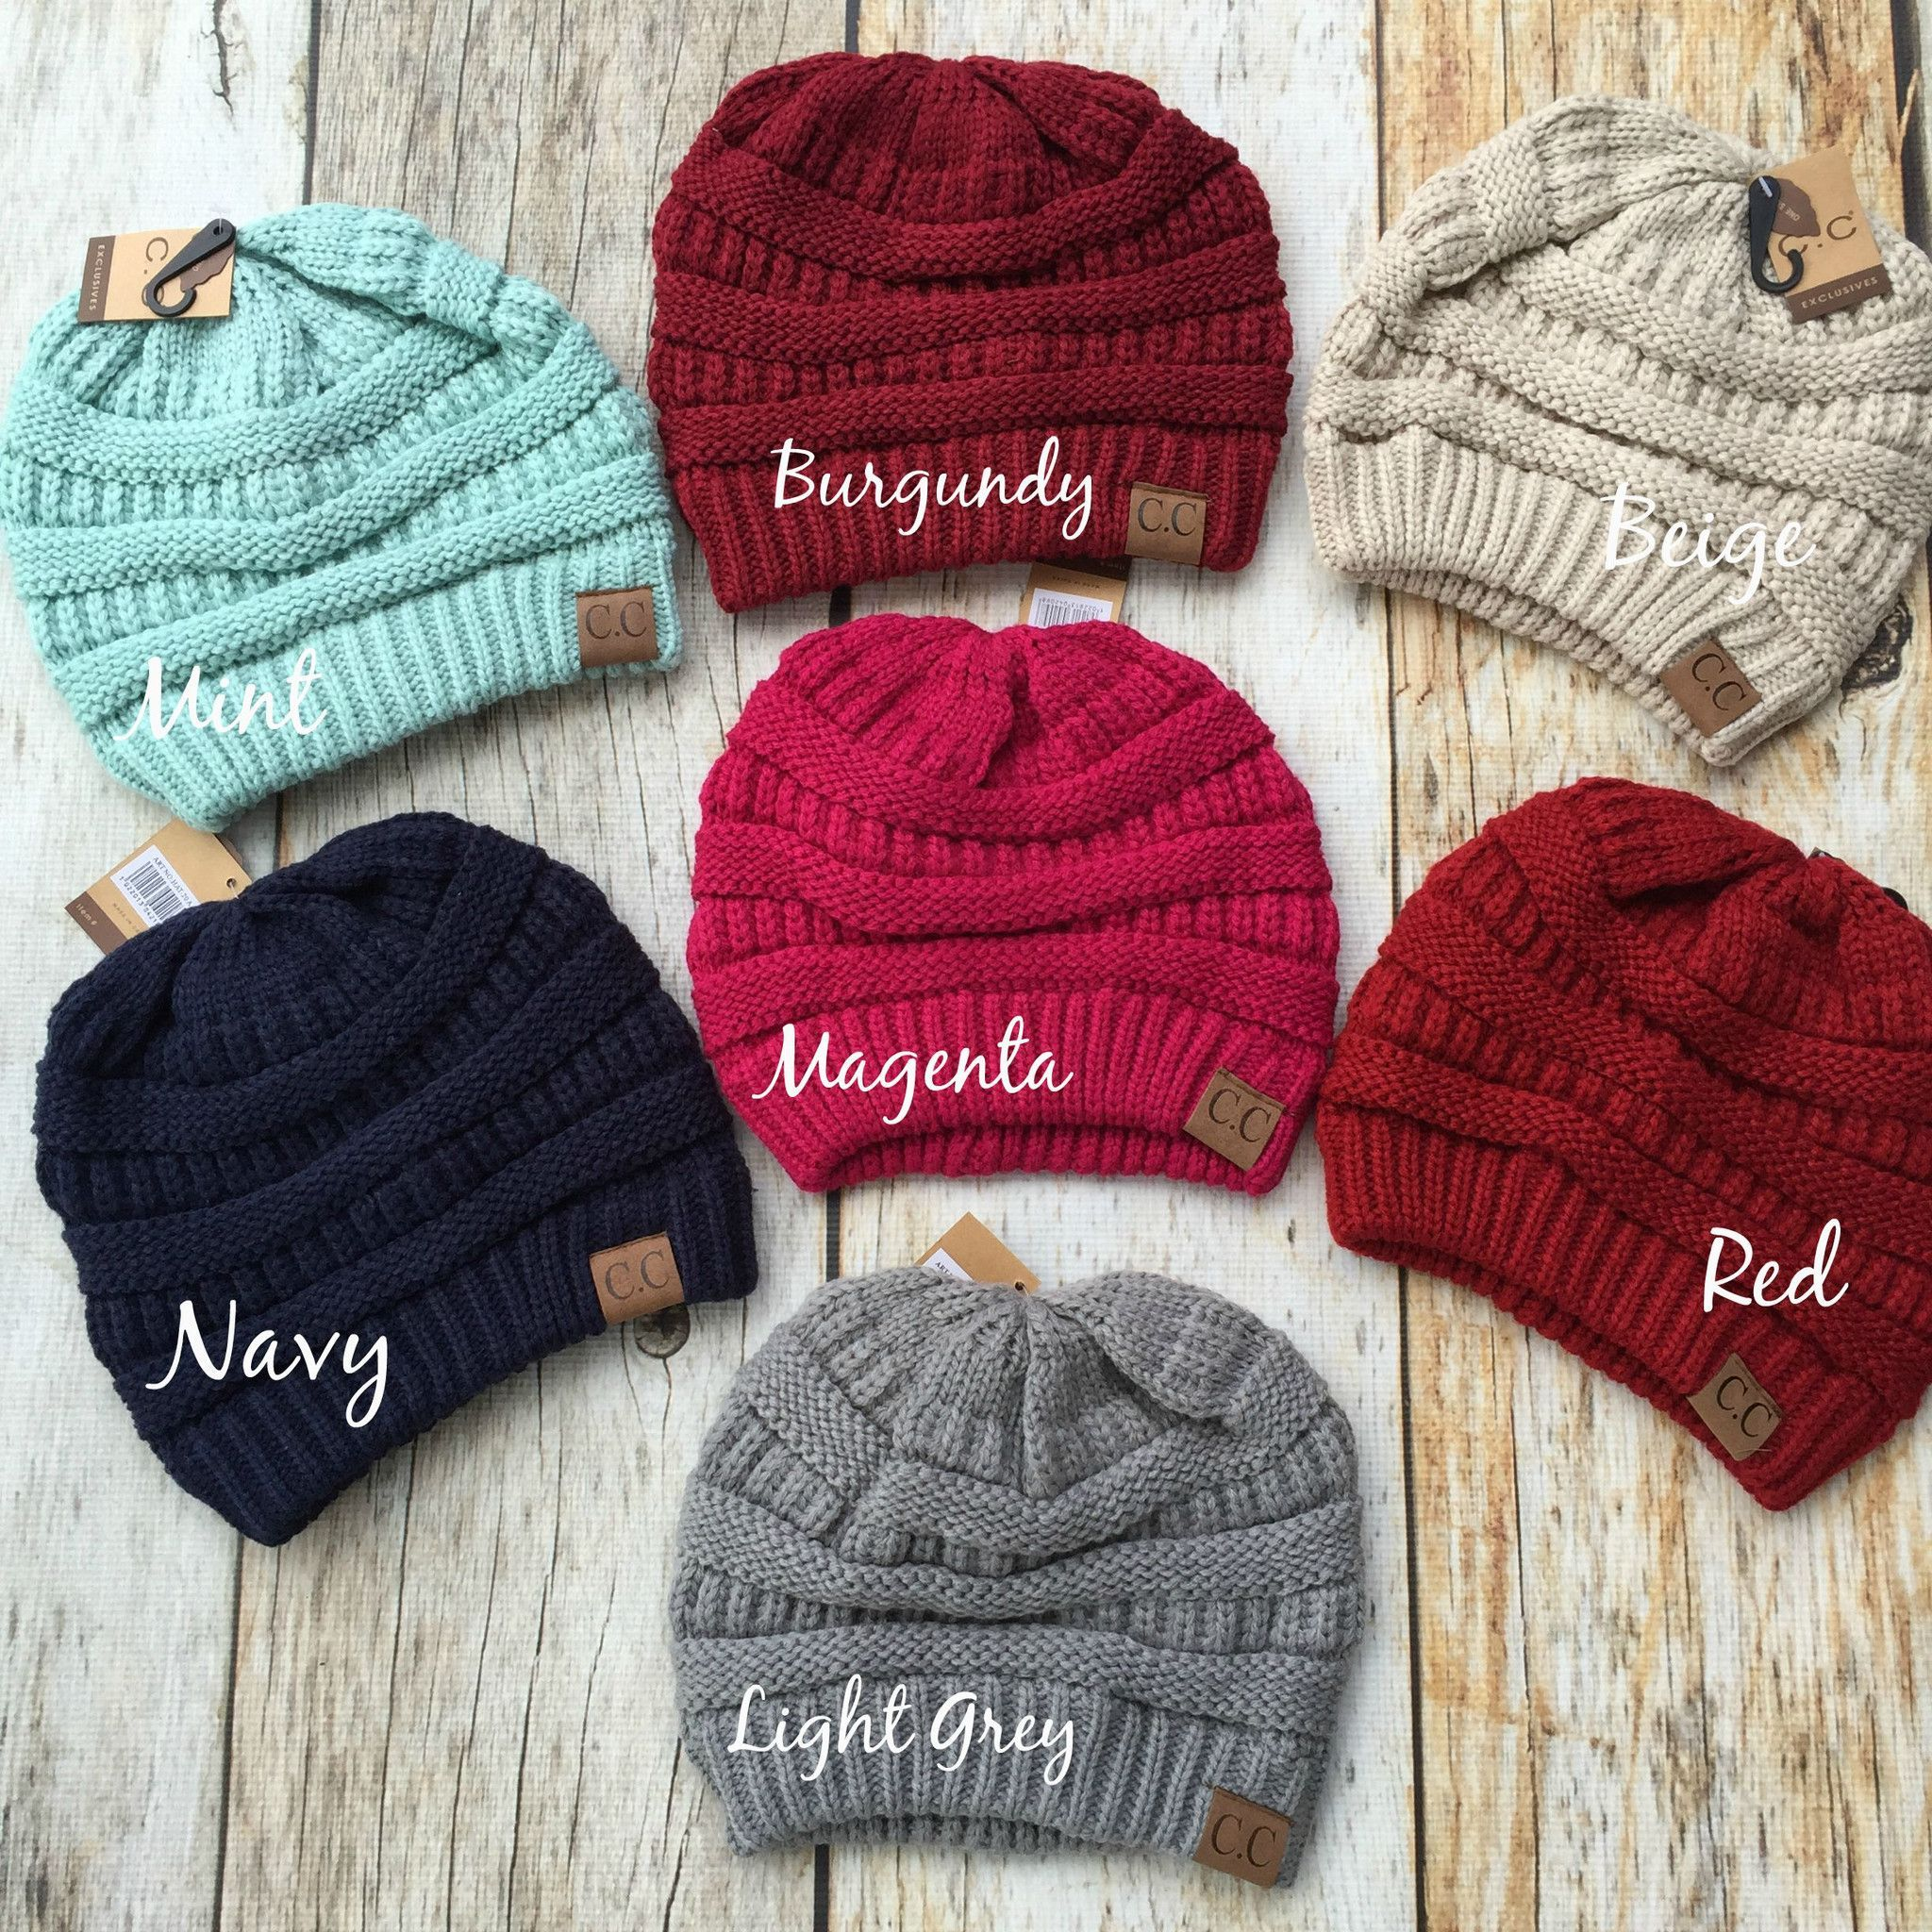 b17f9ce76e1 Best Selling C.C. Slouchy Knit Beanie We have the following colors left   Mint